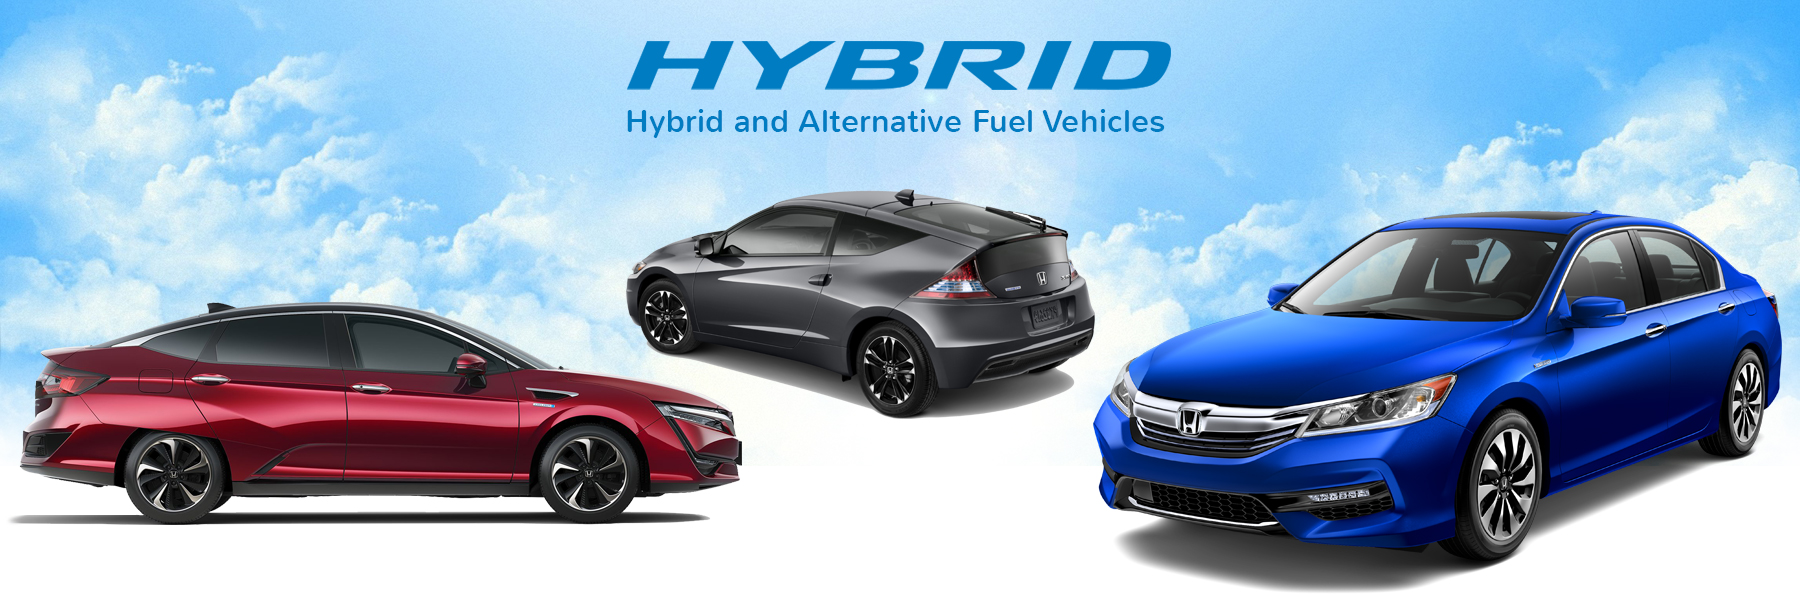 hybrid cars alternative fuel vehicles metro milwaukee honda dealers. Black Bedroom Furniture Sets. Home Design Ideas